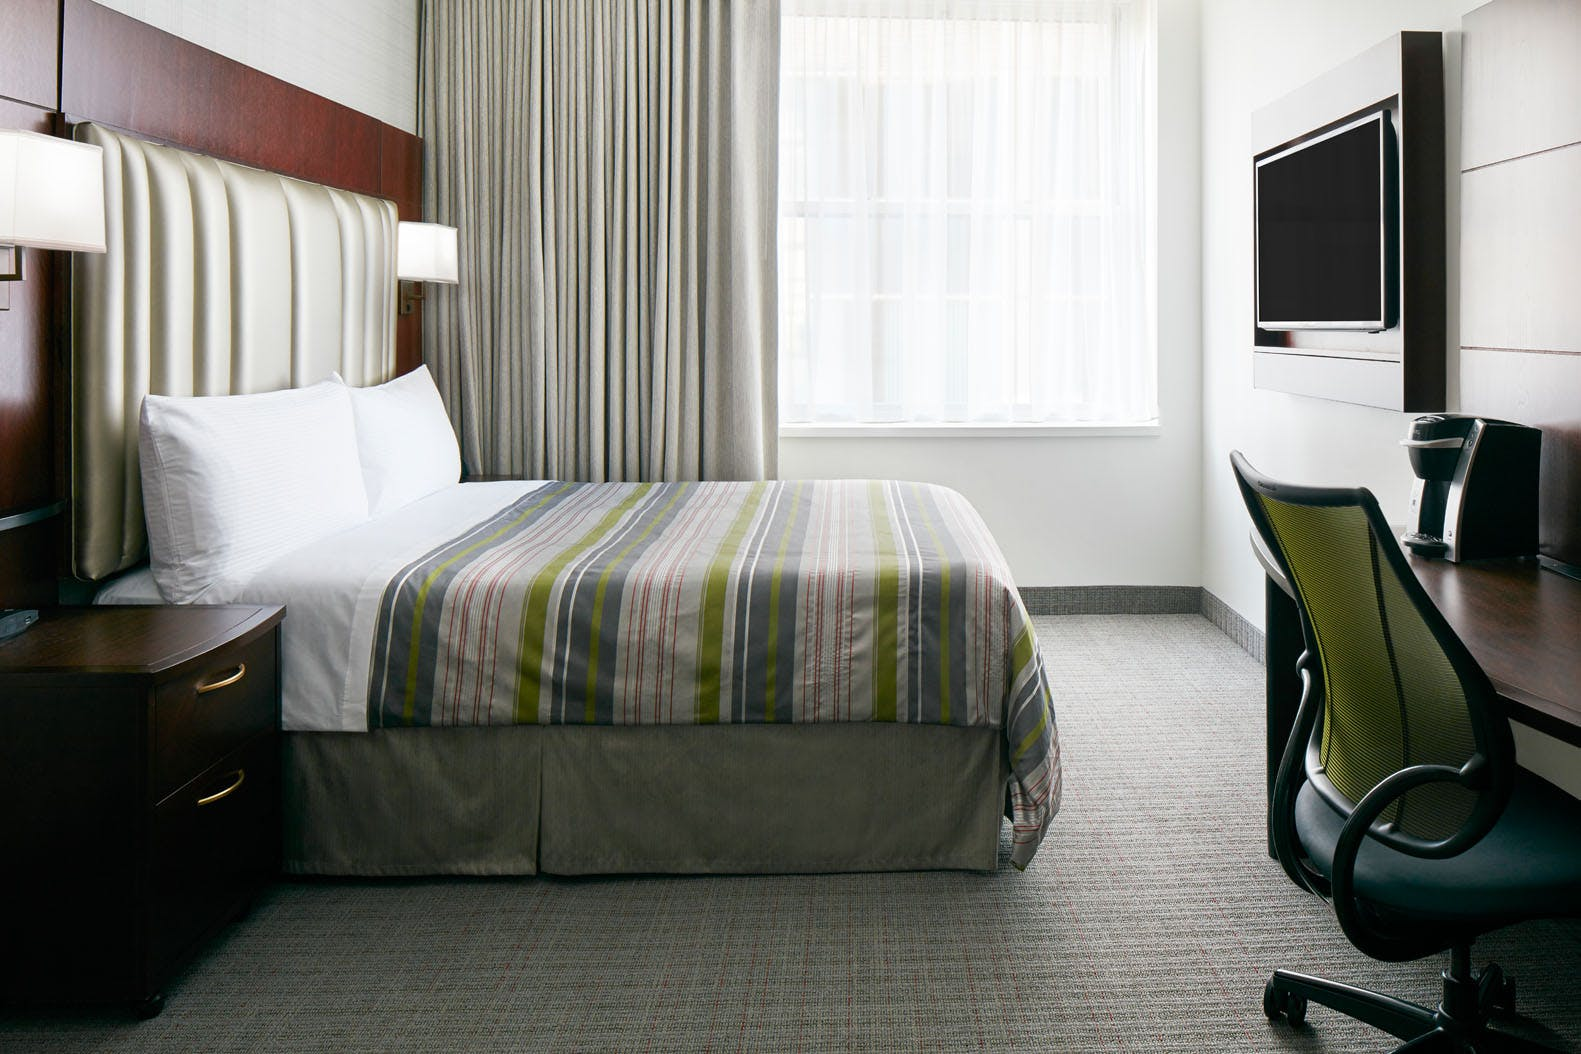 Deluxe Room at Club Quarters Hotel in Boston